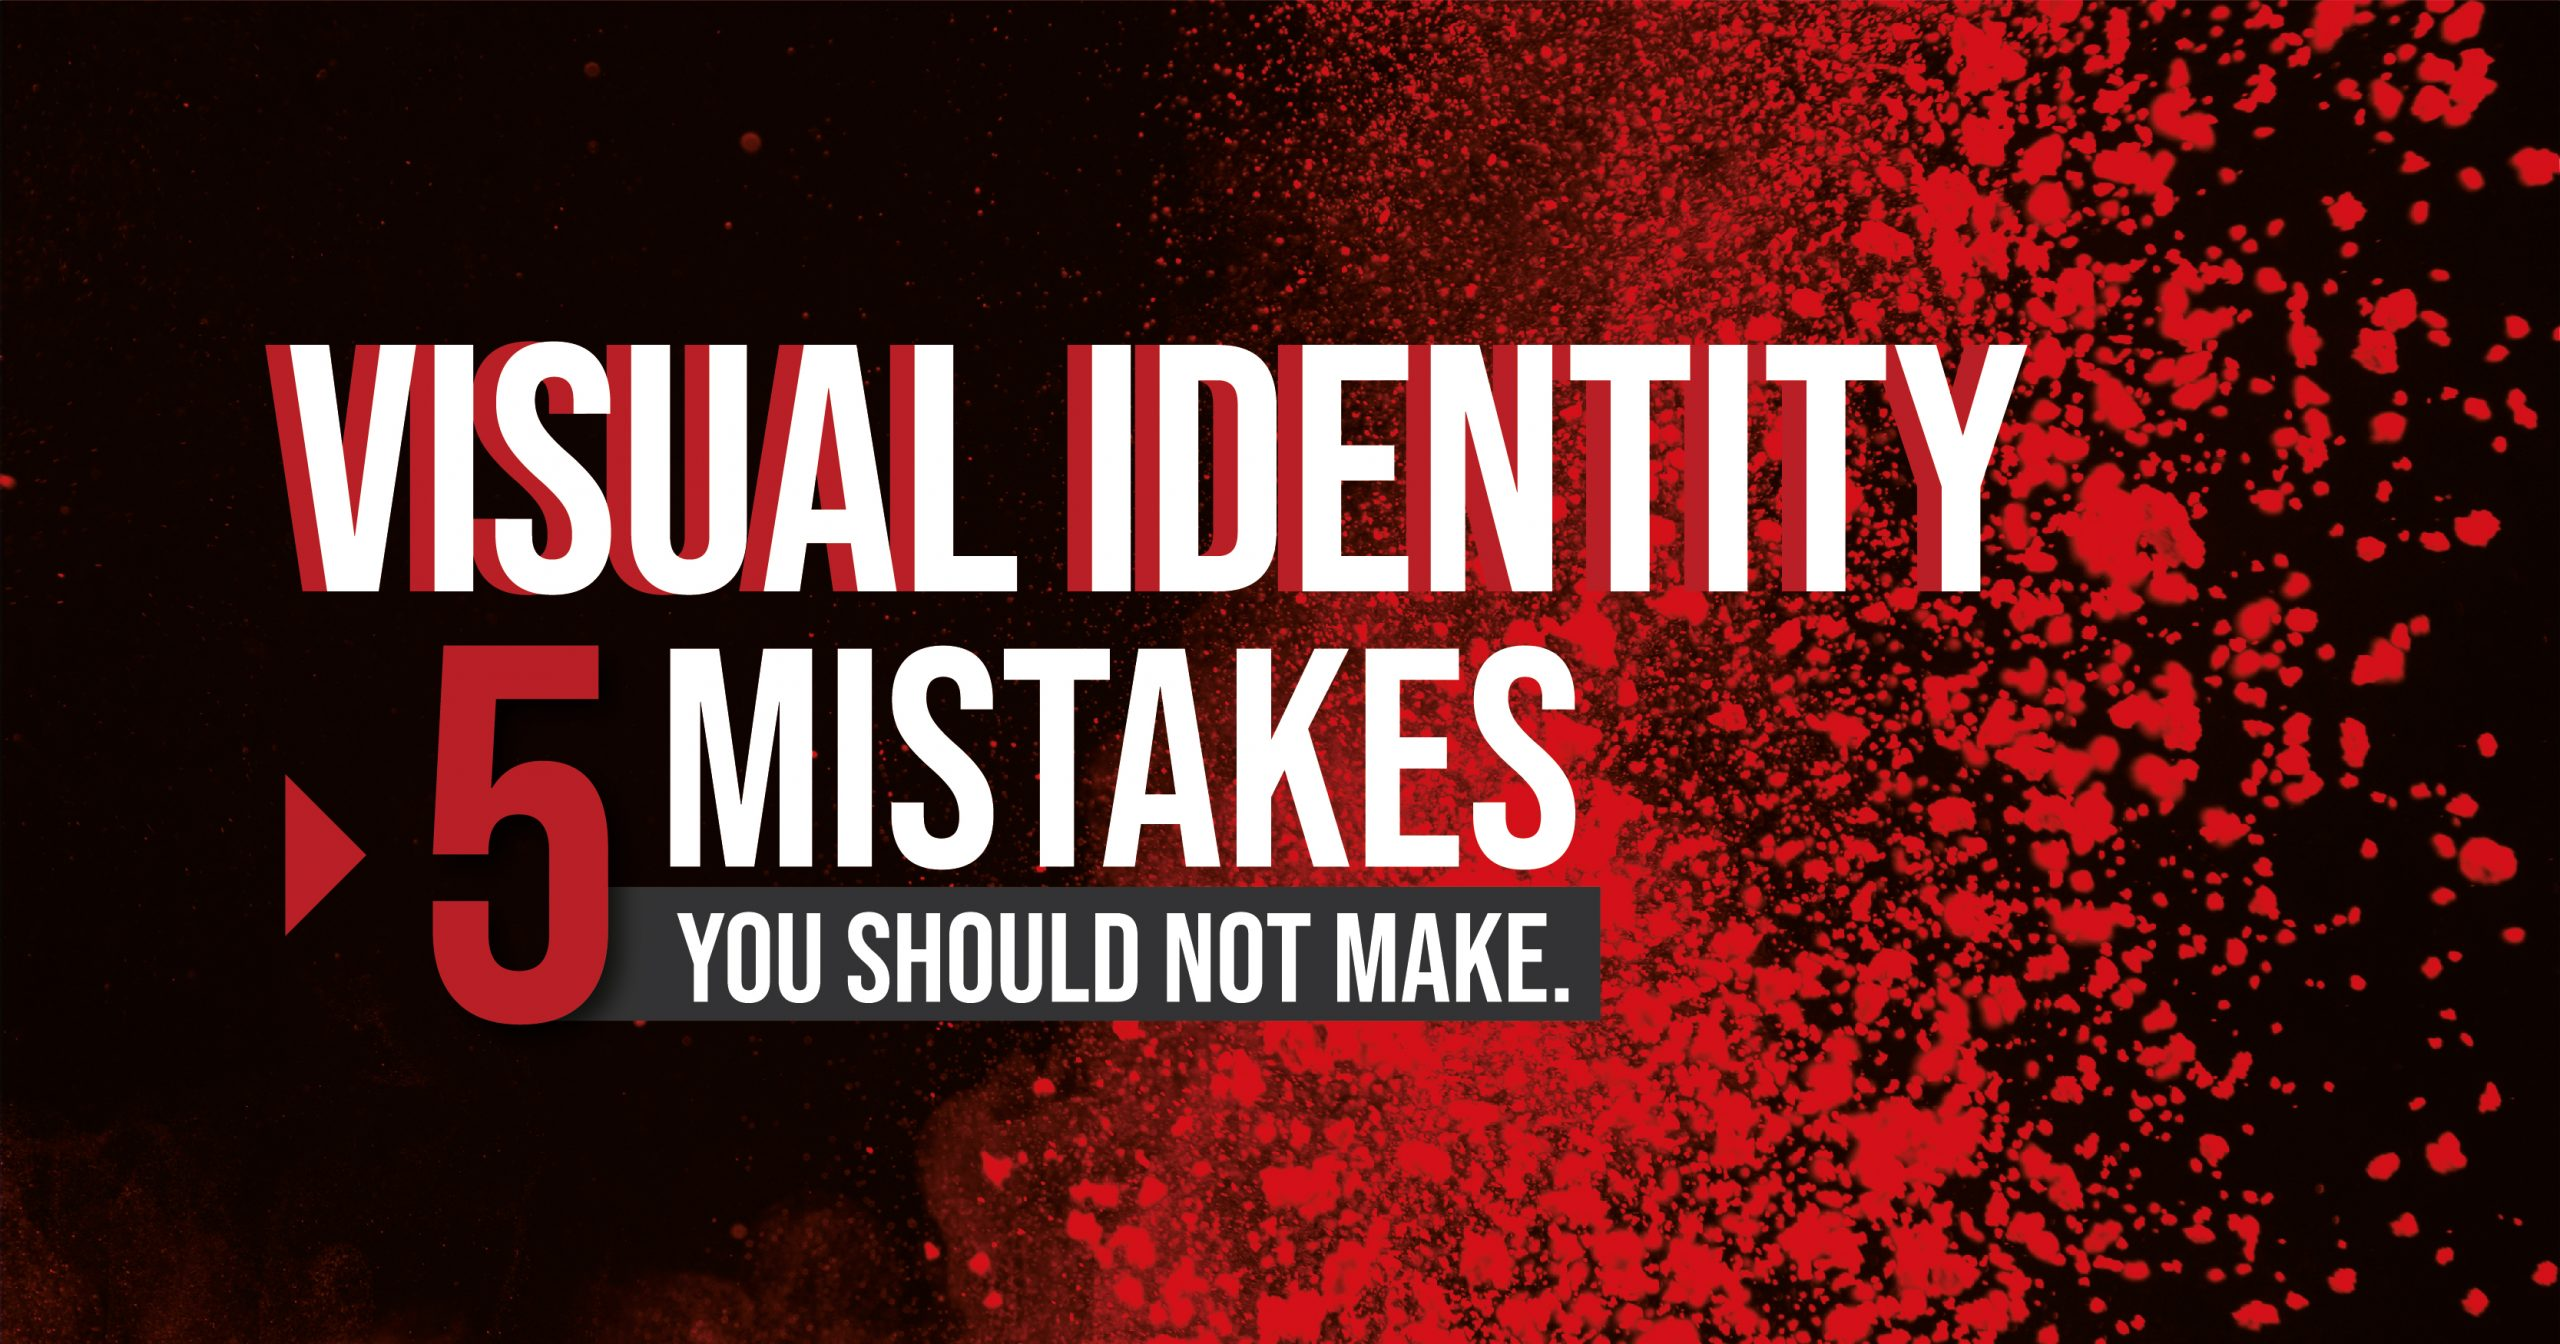 Visual identity, 5 mistakes you should not make.